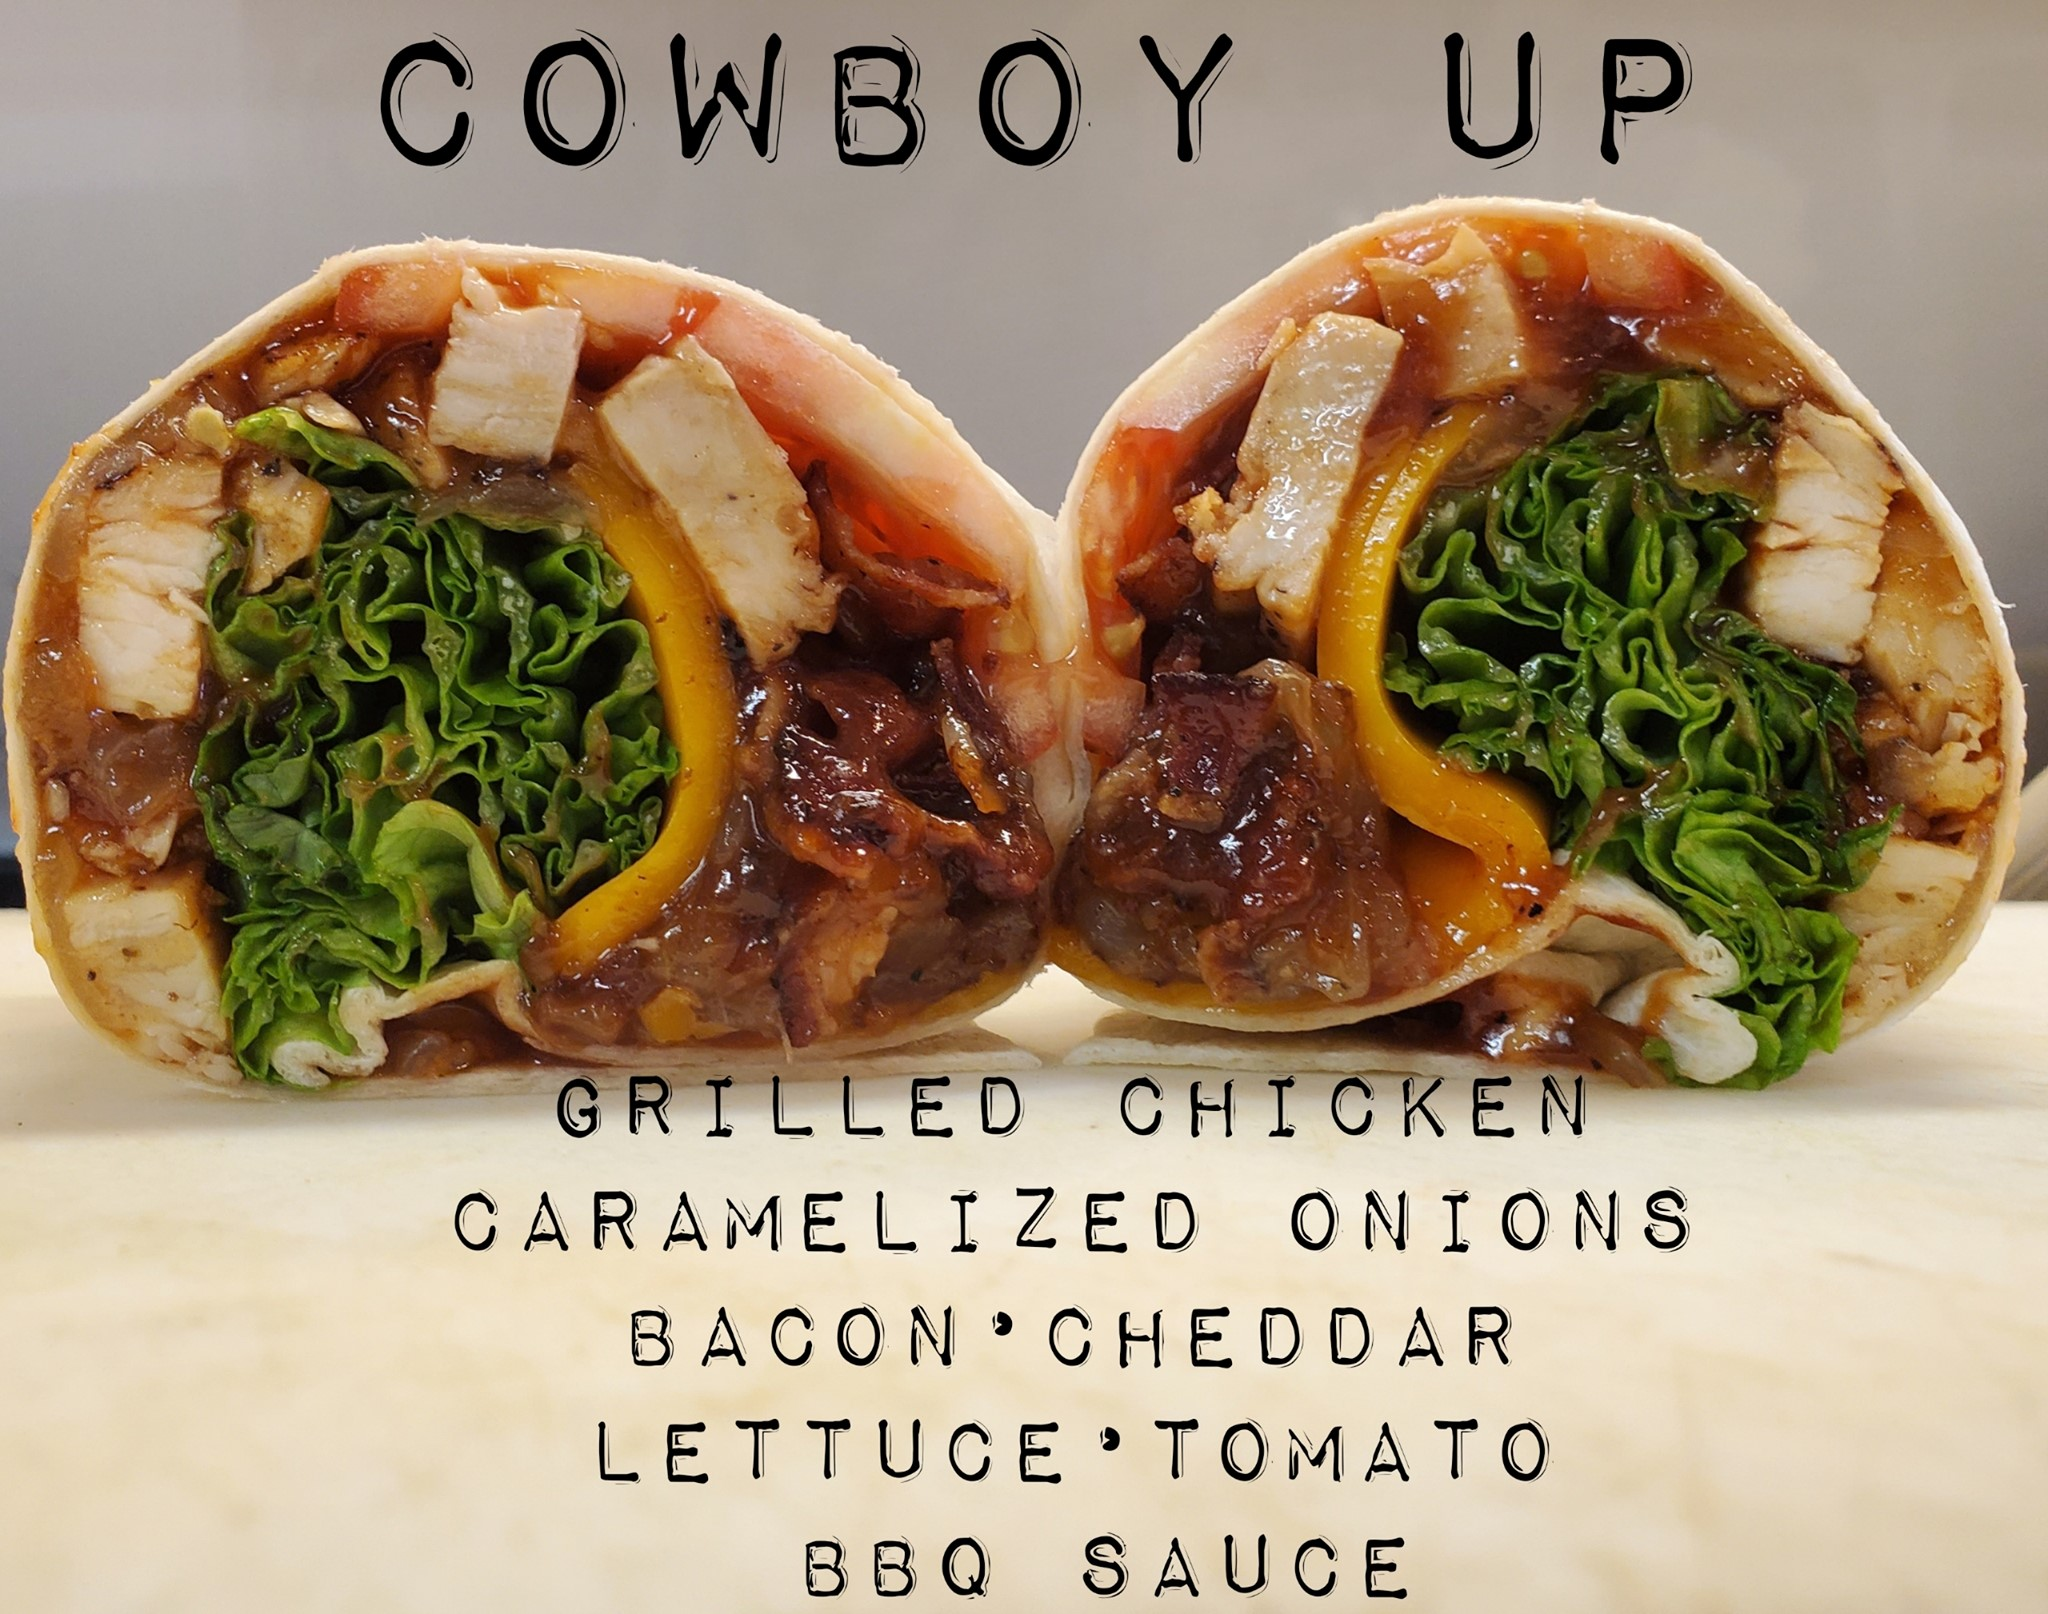 Cowboy up: grilled chicken, caramelized onions, bacon, cheddar, lettuce, tomato, BBQ sauce